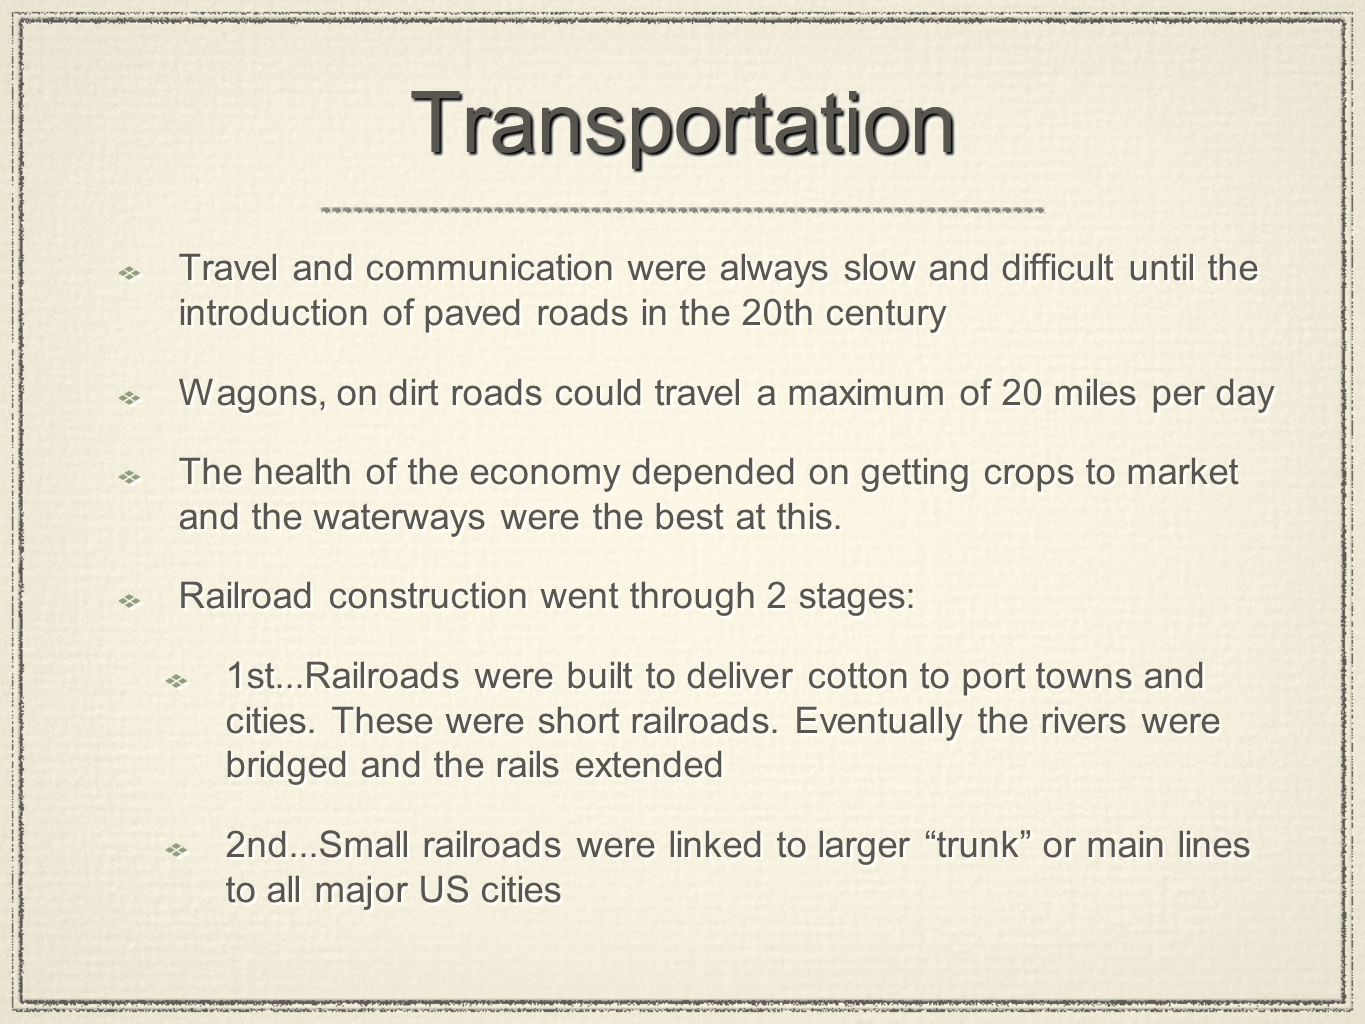 Transportation Travel and communication were always slow and difficult until the introduction of paved roads in the 20th century.